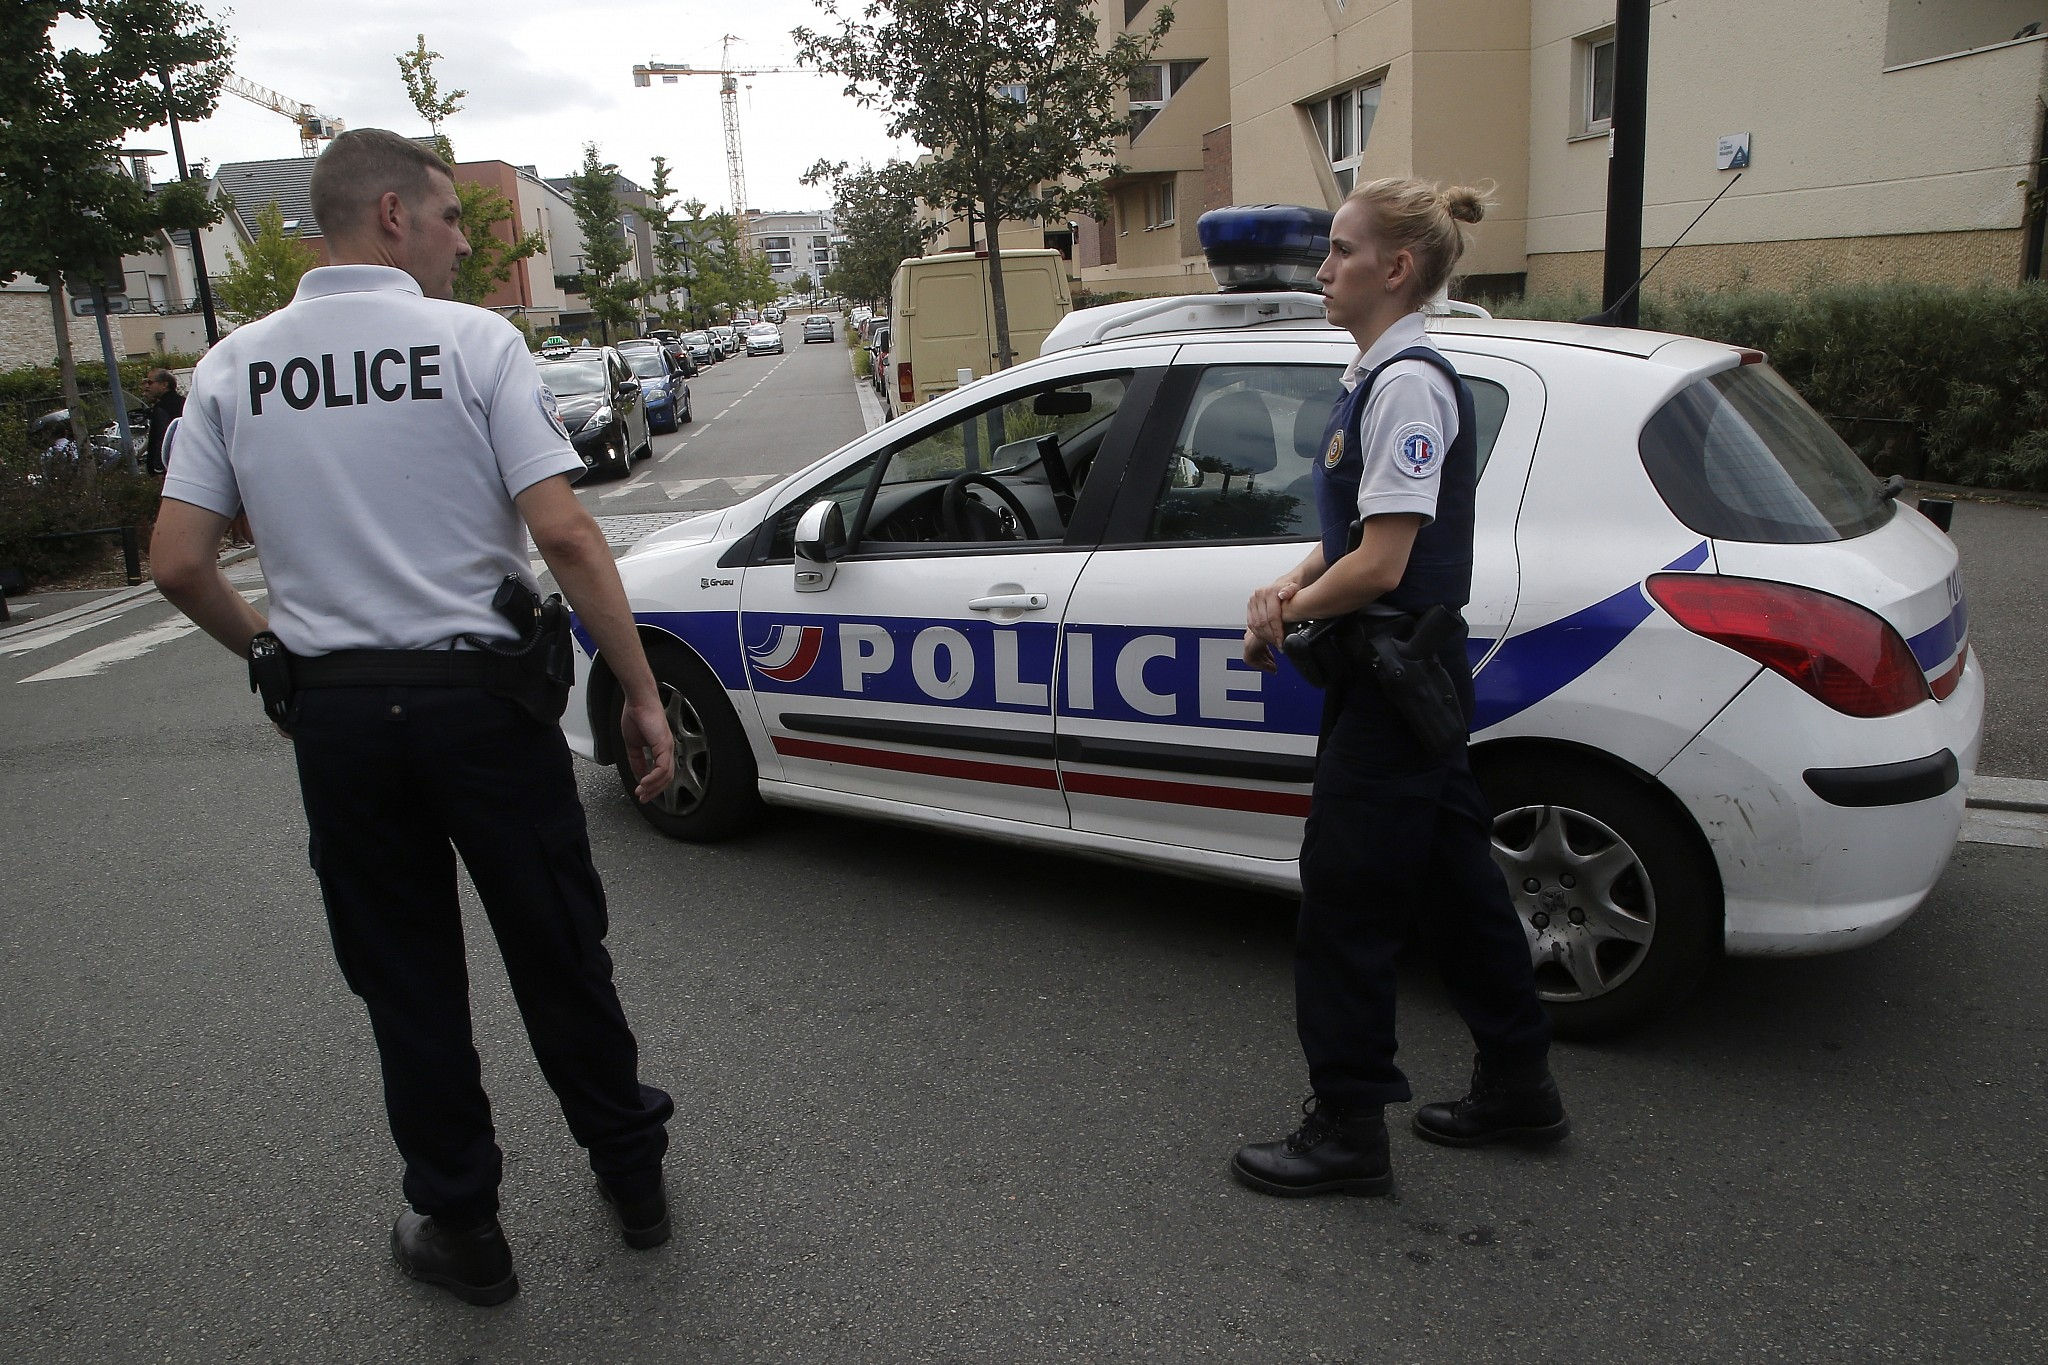 2 dead in knife attack near Paris; police kill suspect